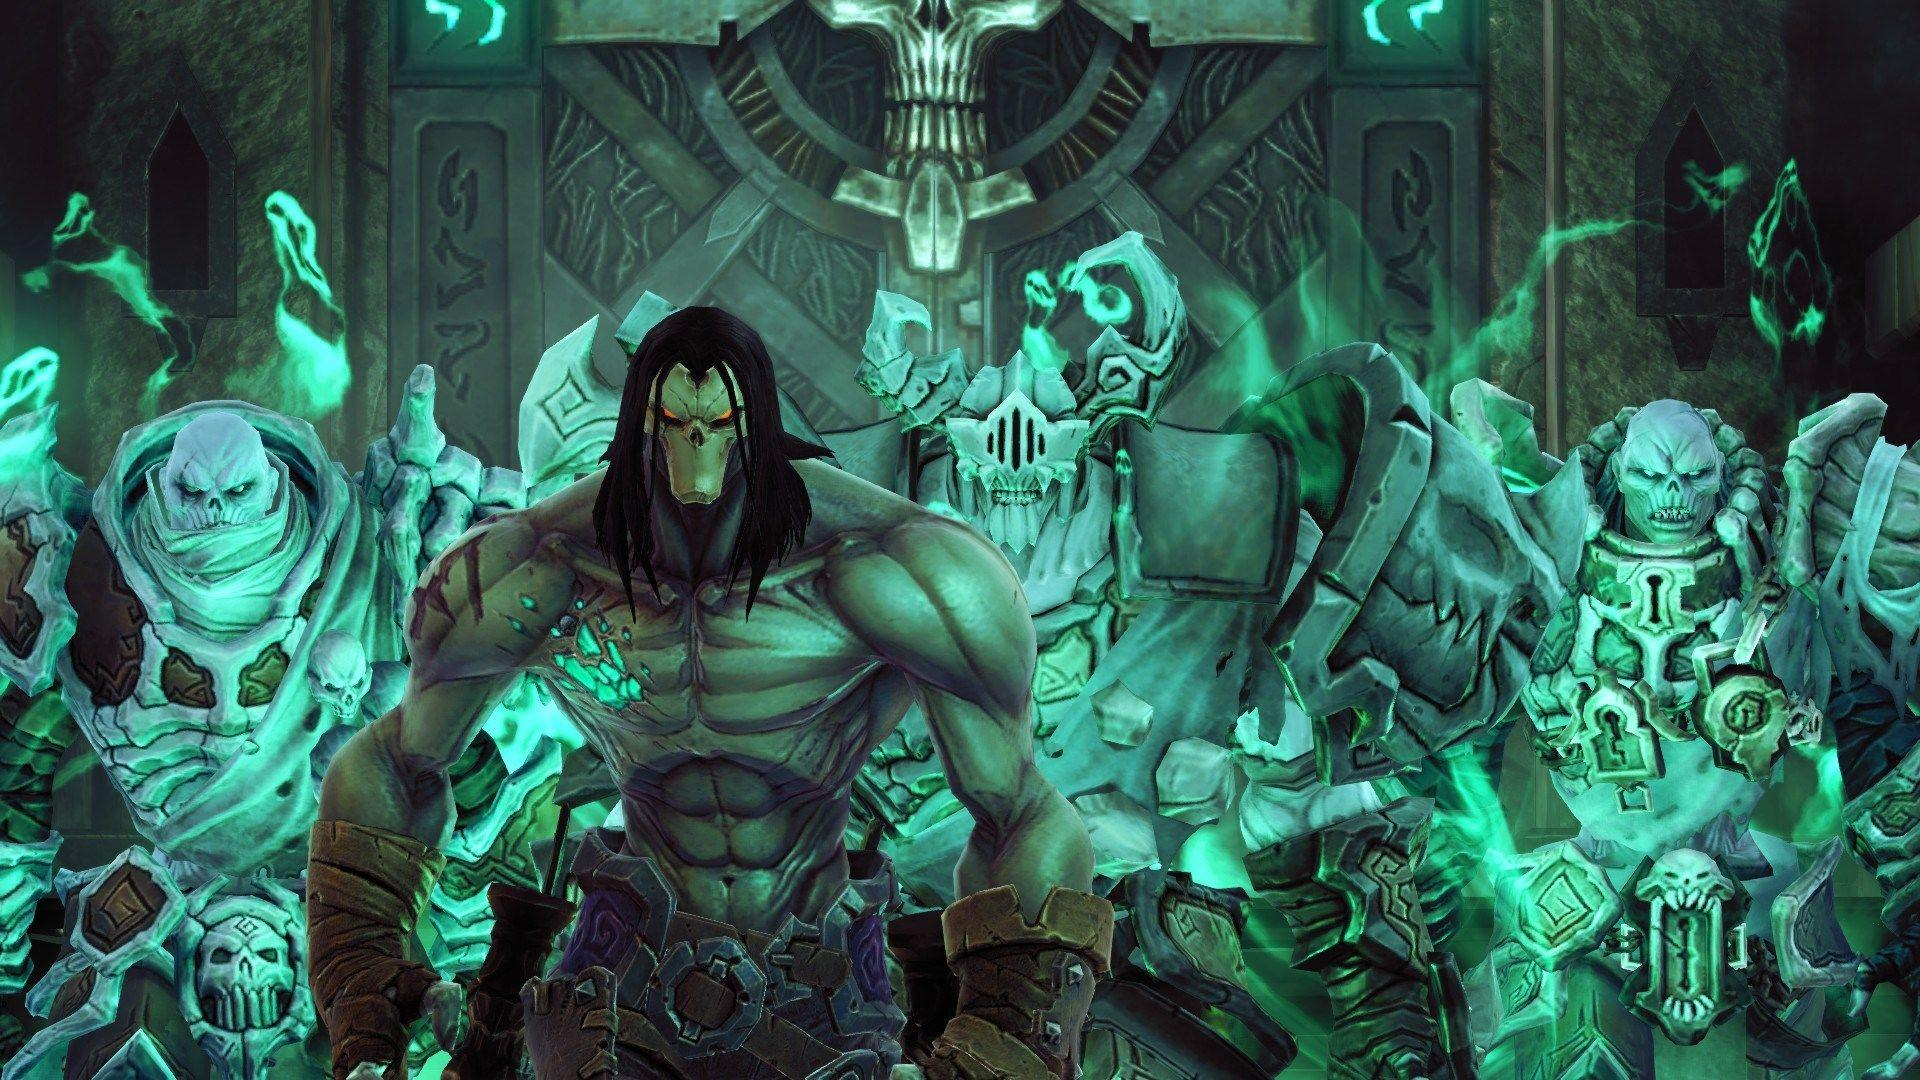 Darksiders Ii Deathinitive Edition Wallpapers Wallpaper Cave